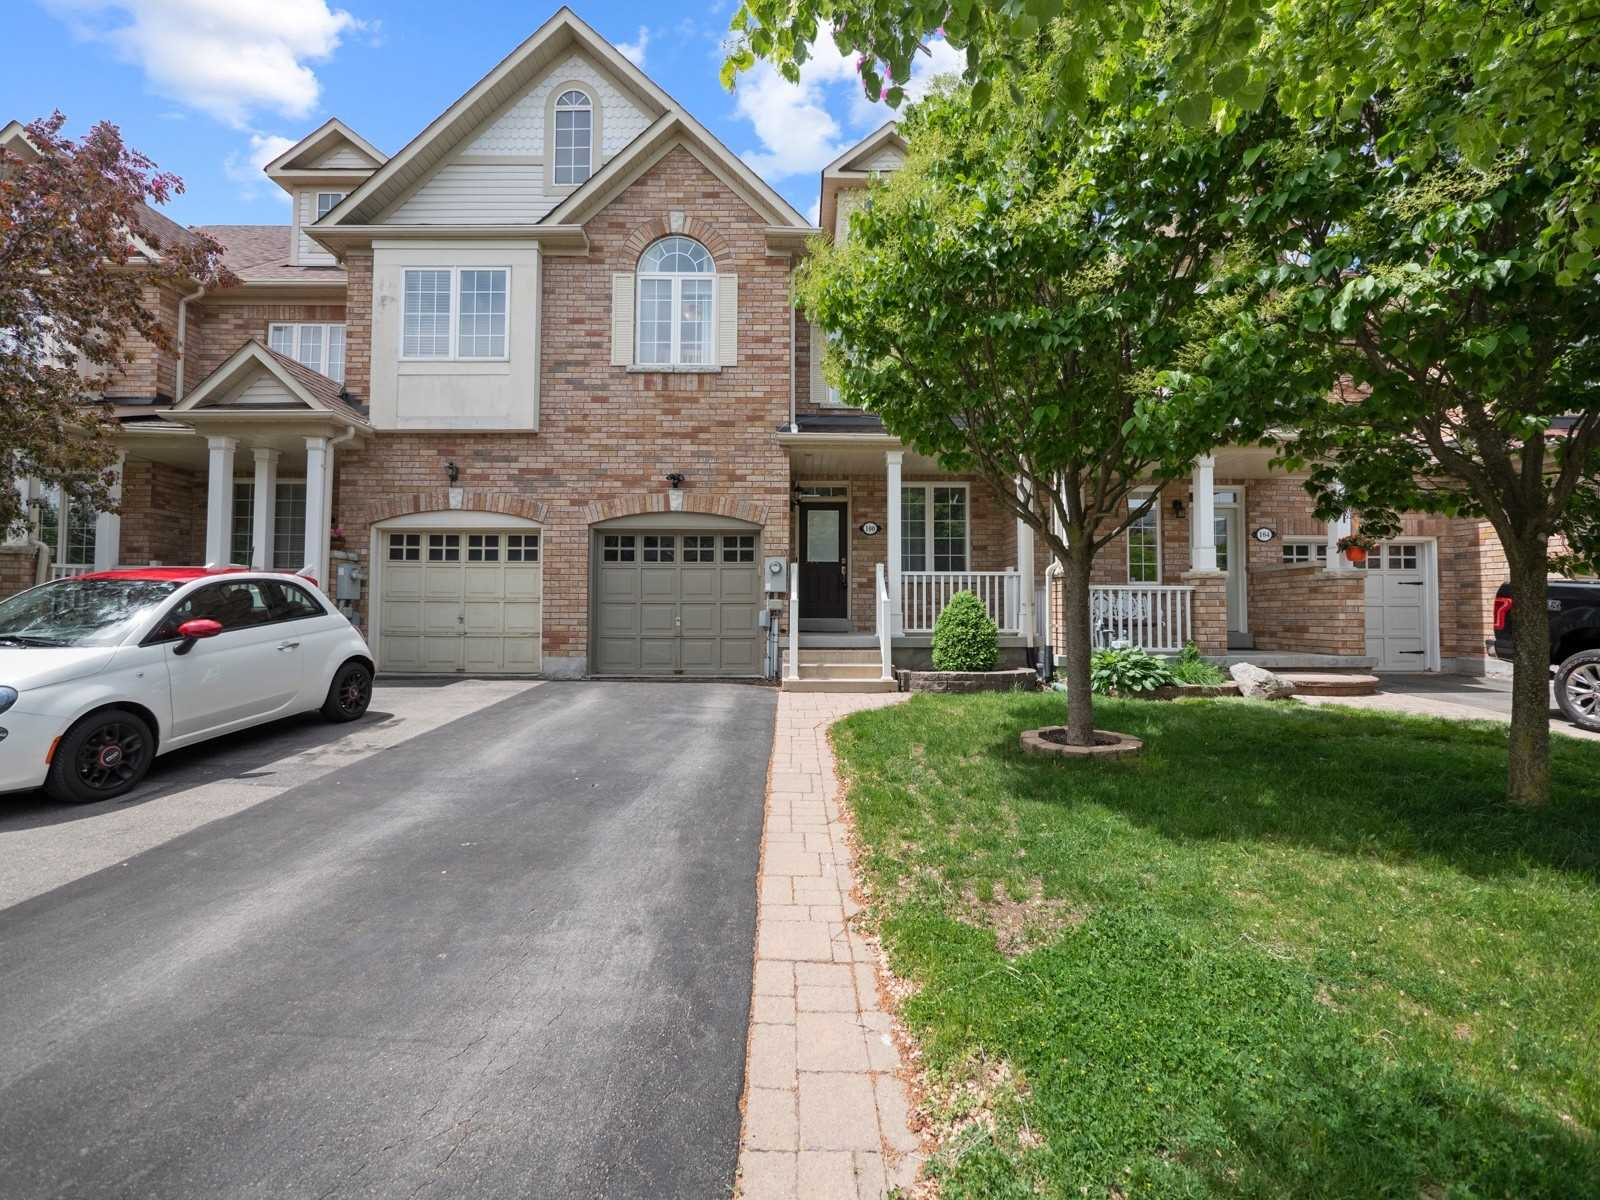 pictures of house for sale MLS: N5254815 located at 100 Kirkvalley Cres, Aurora L4G7R1